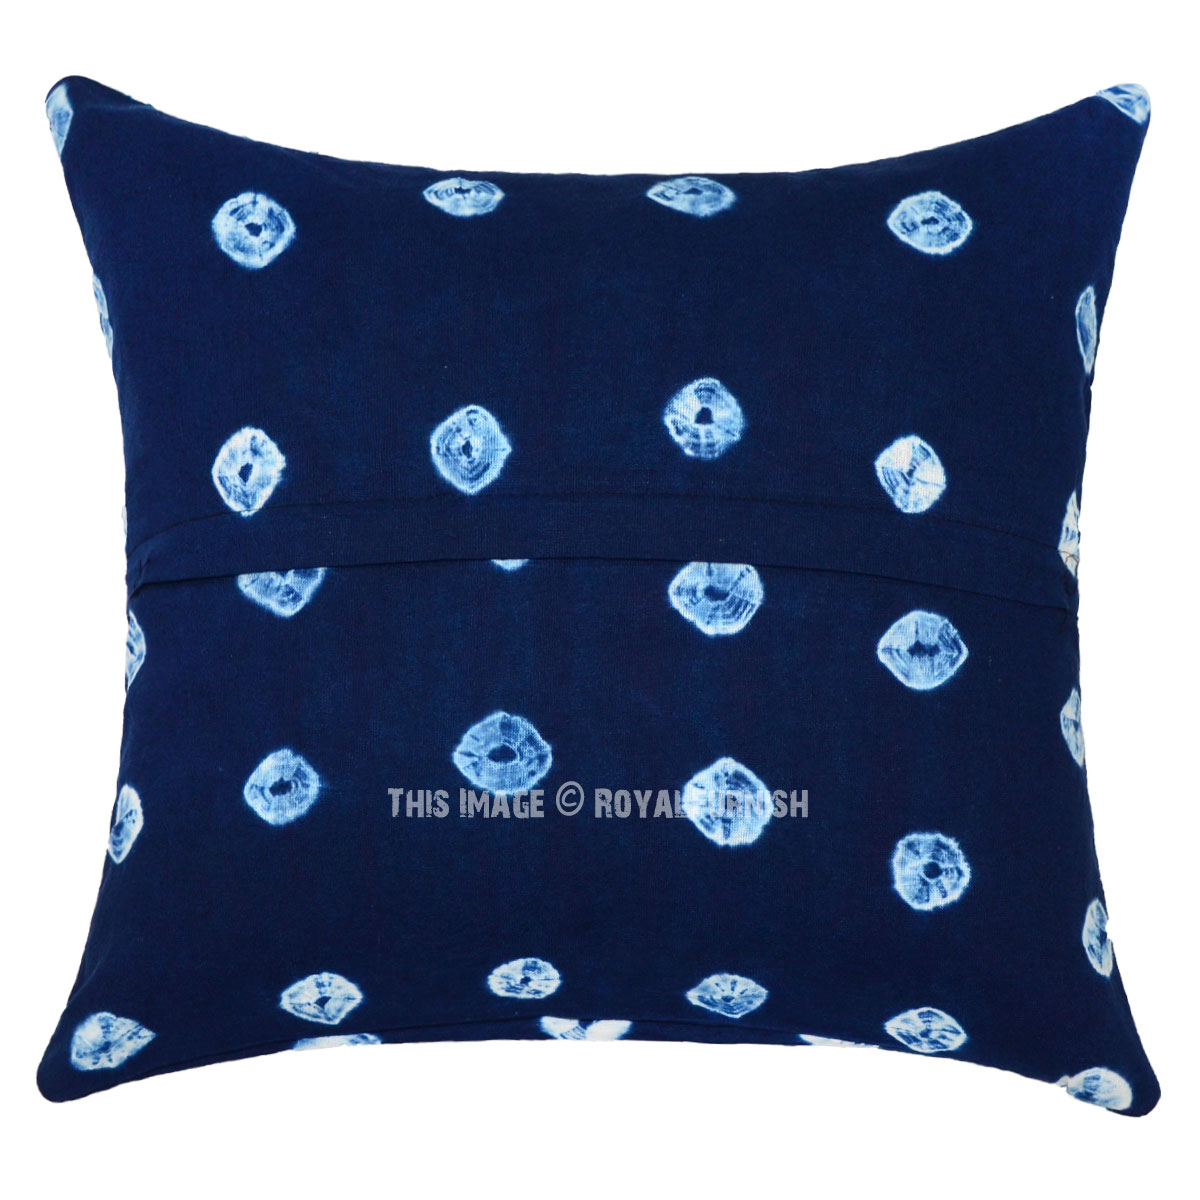 Blue Medallion Outdoor Throw Pillows Square